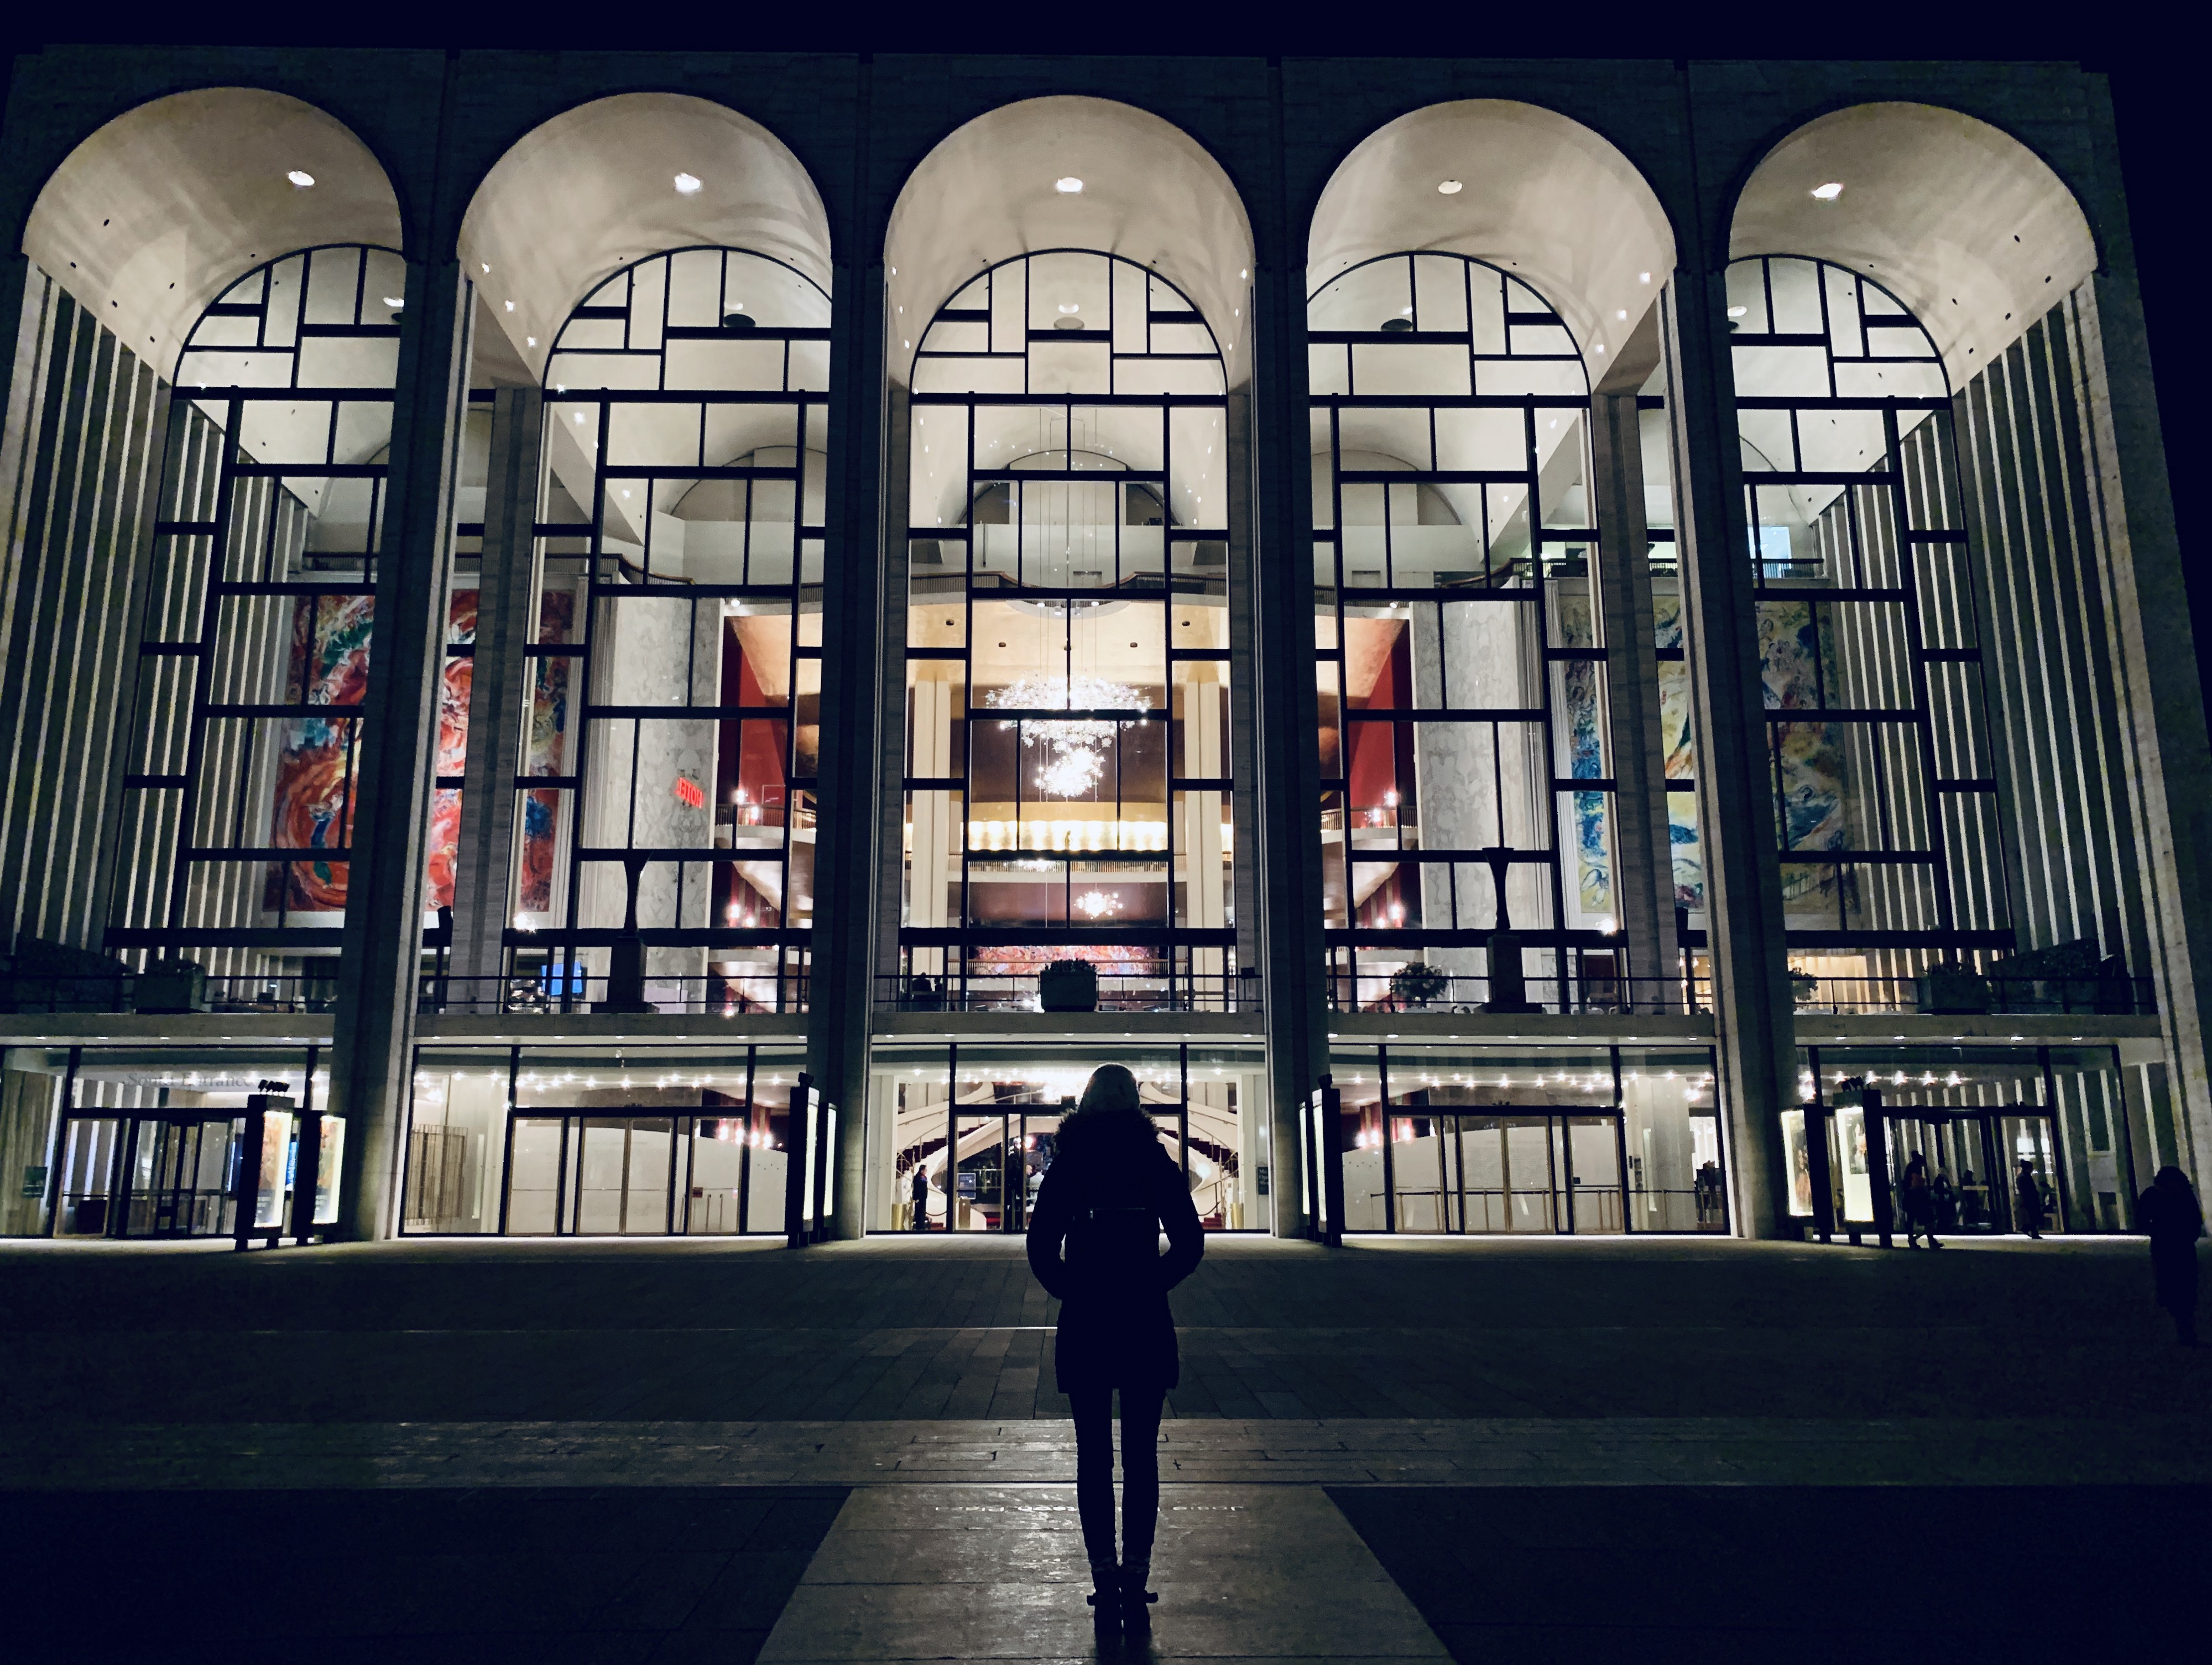 Metropolitan Opera House at night, Lincoln Center, New York City